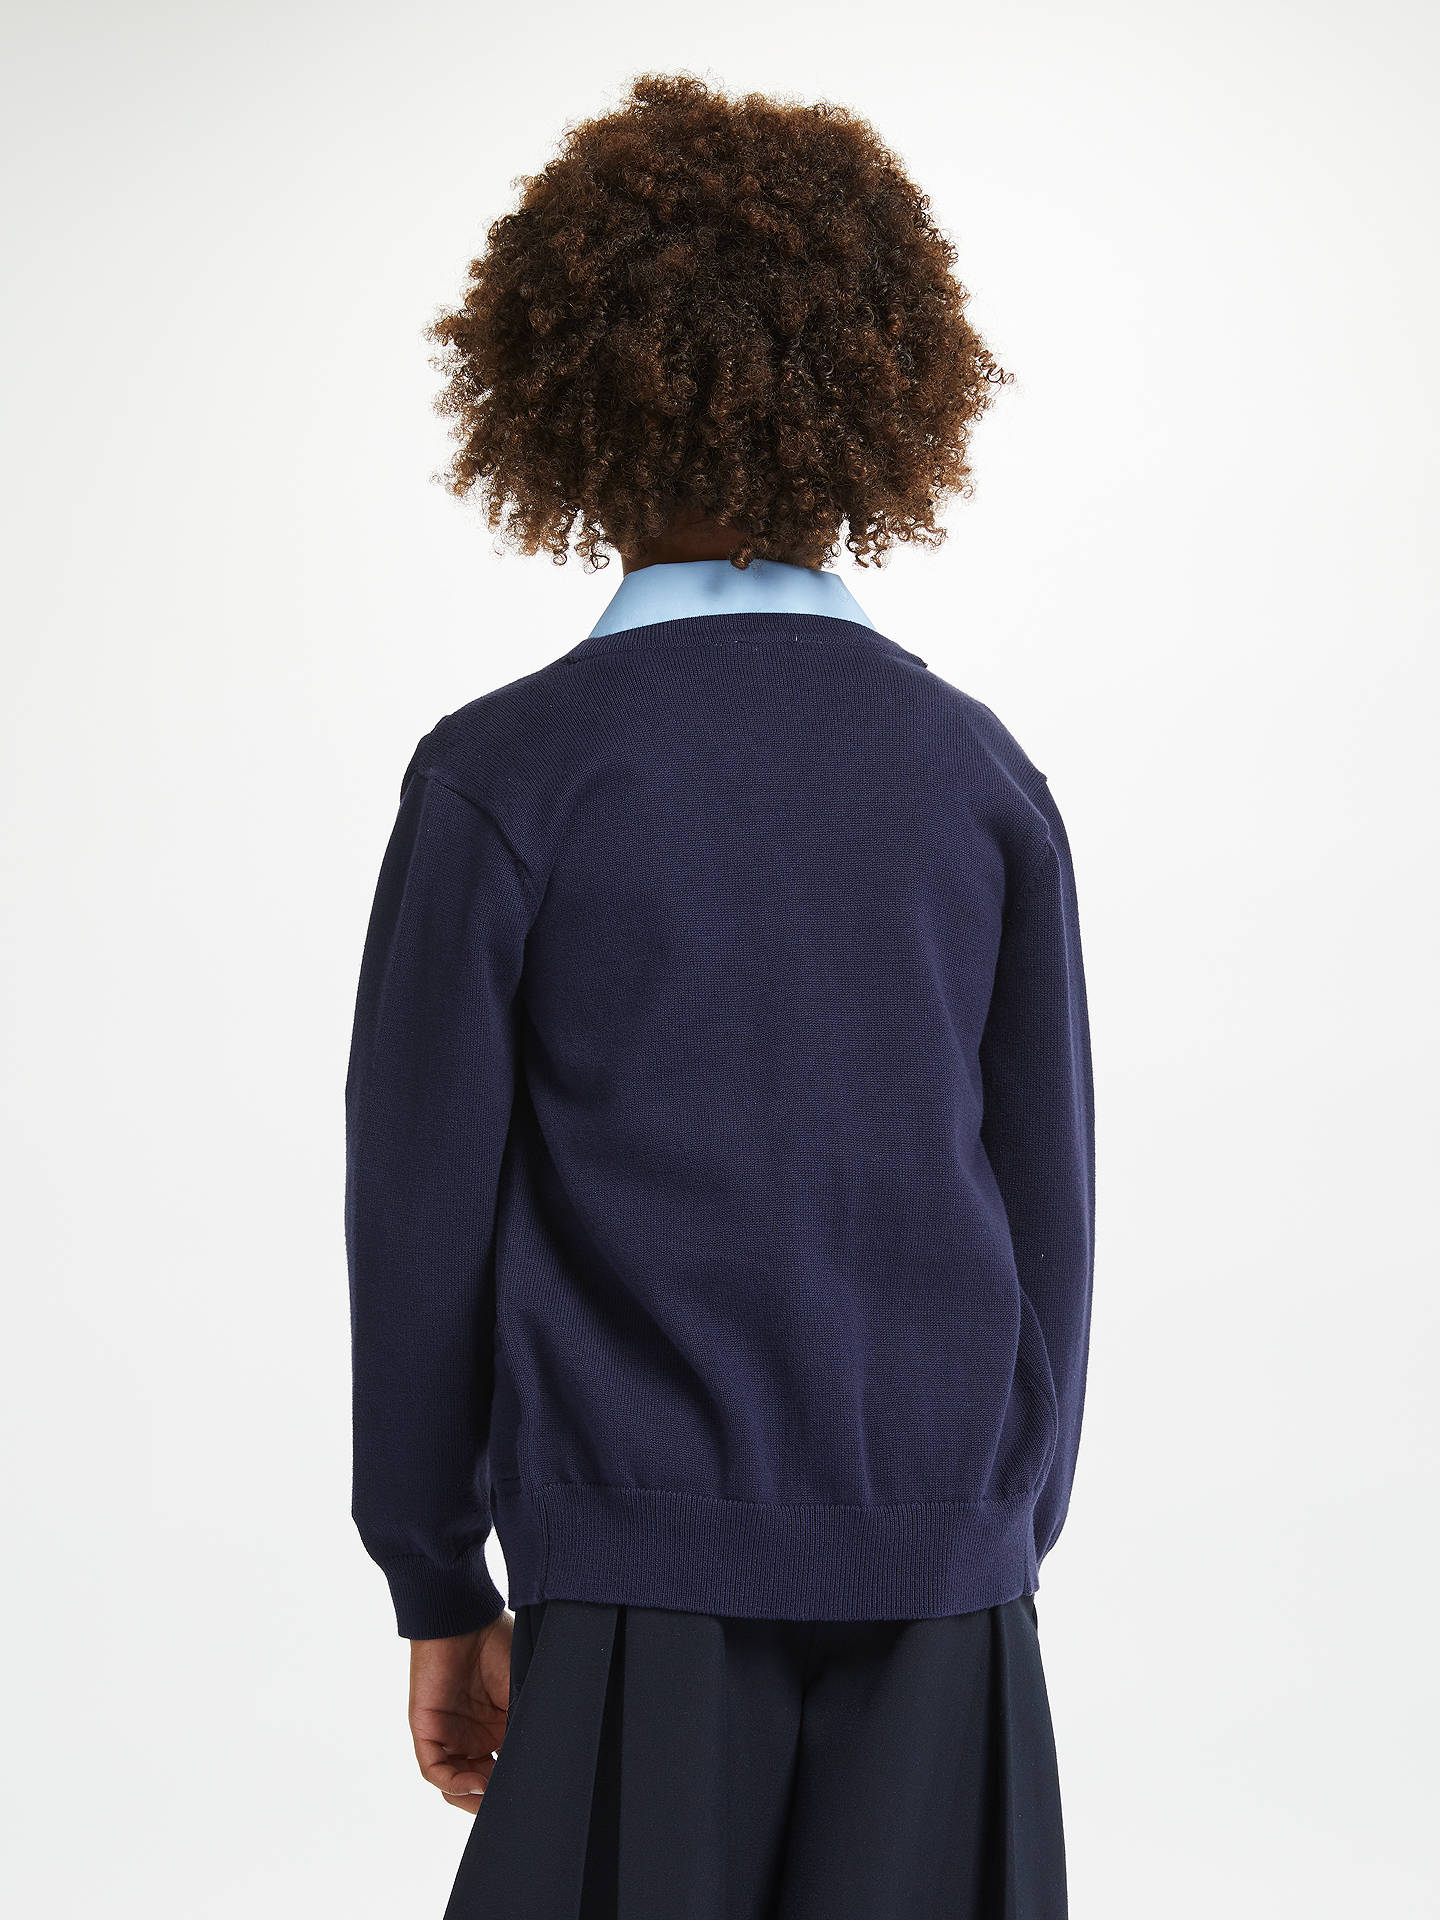 Buy John Lewis & Partners Cotton Rich V-Neck School Cardigan, Navy, 3-4 years Online at johnlewis.com